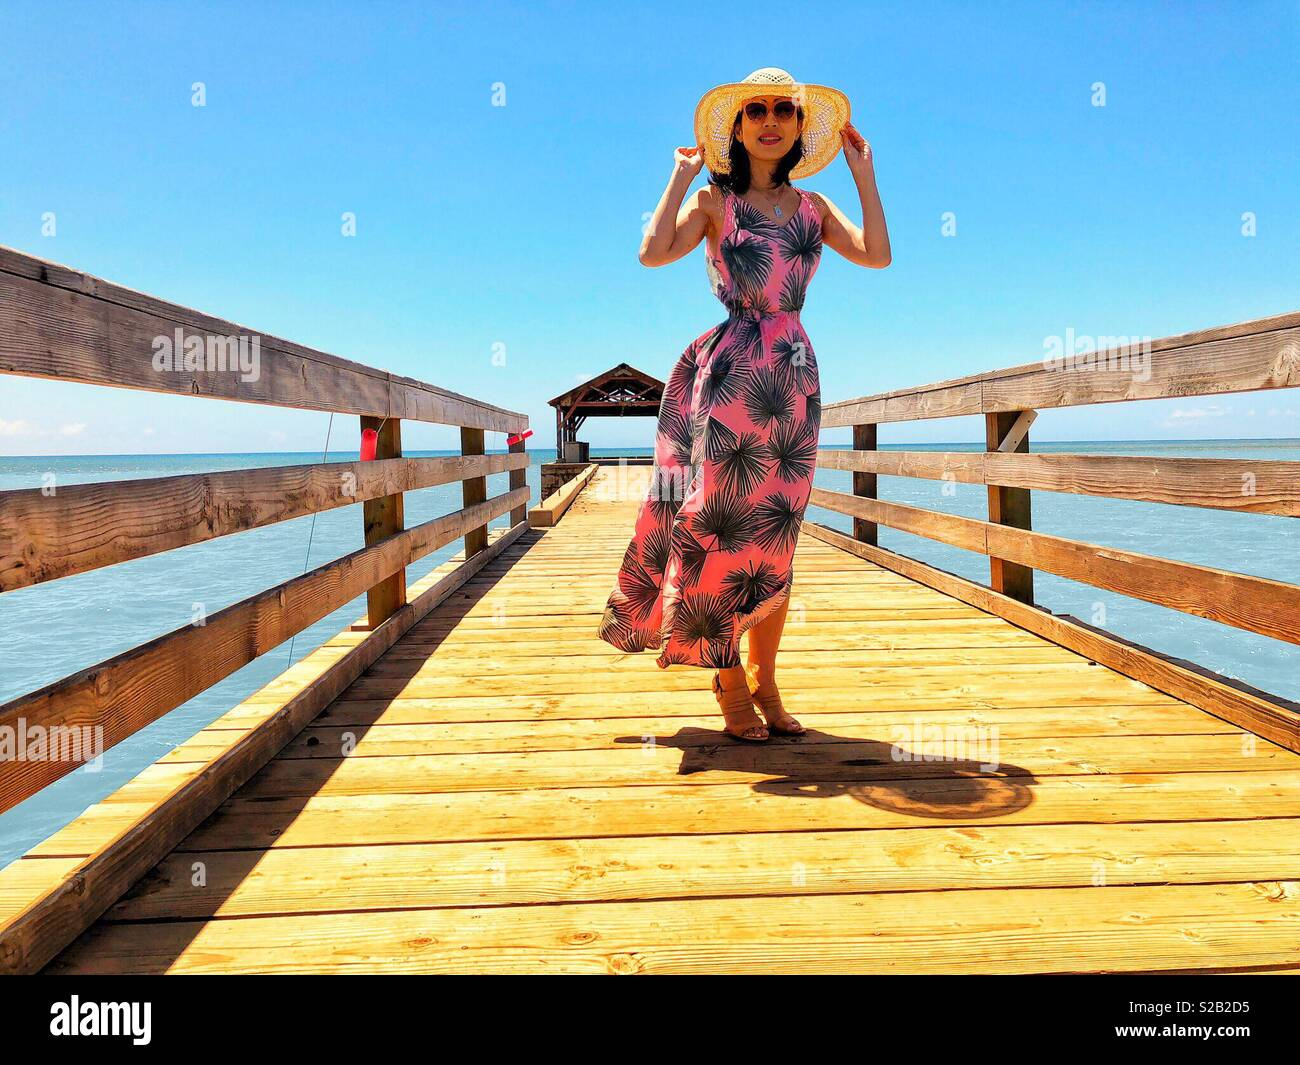 Beautiful young brunette woman with shapely figure, long floral pink and green sundress, pink sunglasses and sun hat smiling glowingly aboard a long fishing pier in tropical Waimea Kauai Hawaii. - Stock Image